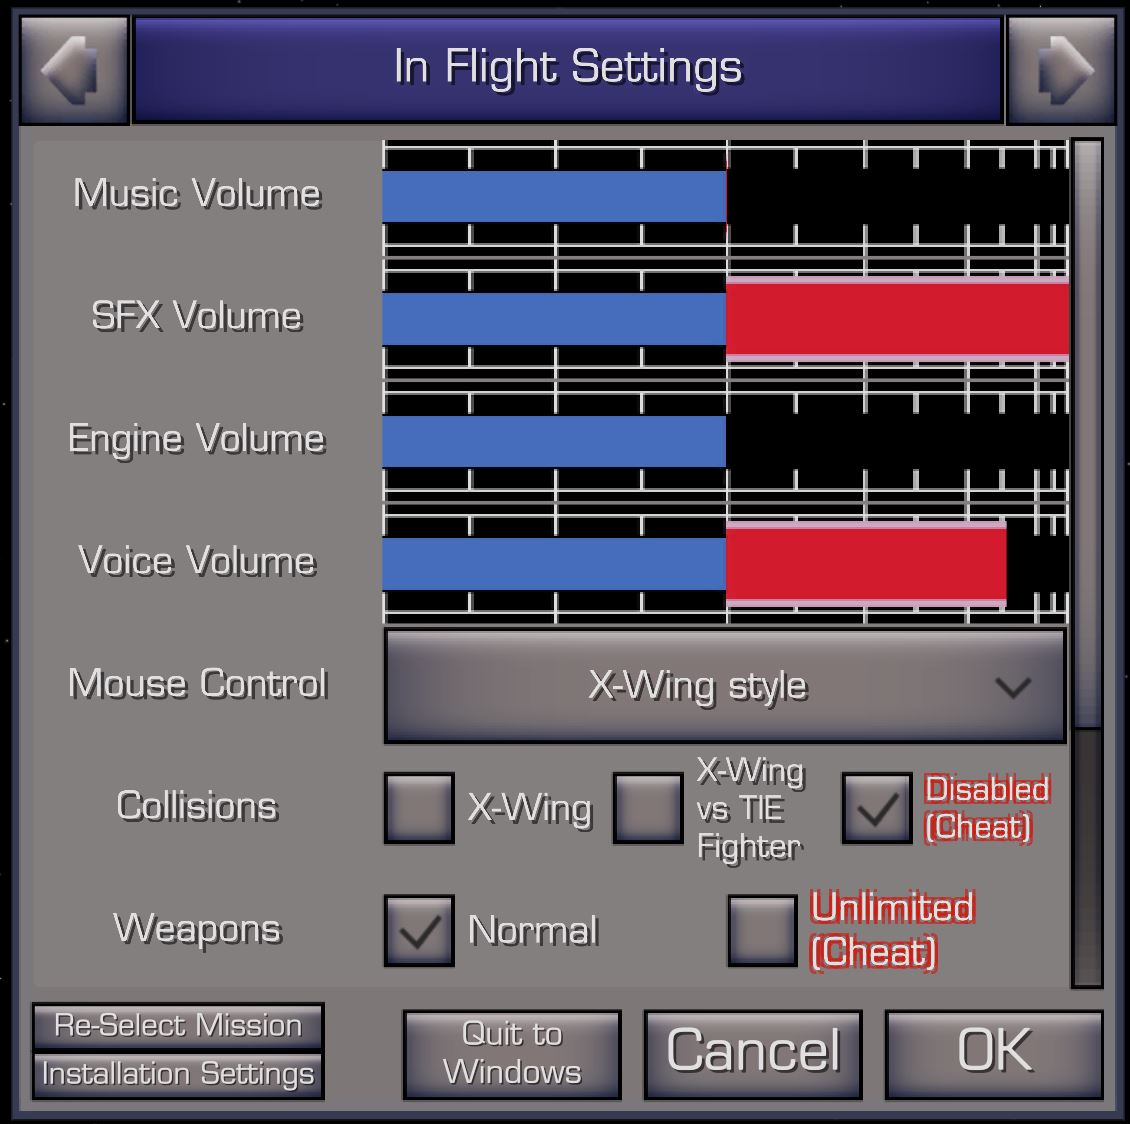 XWVM In Flight Settings